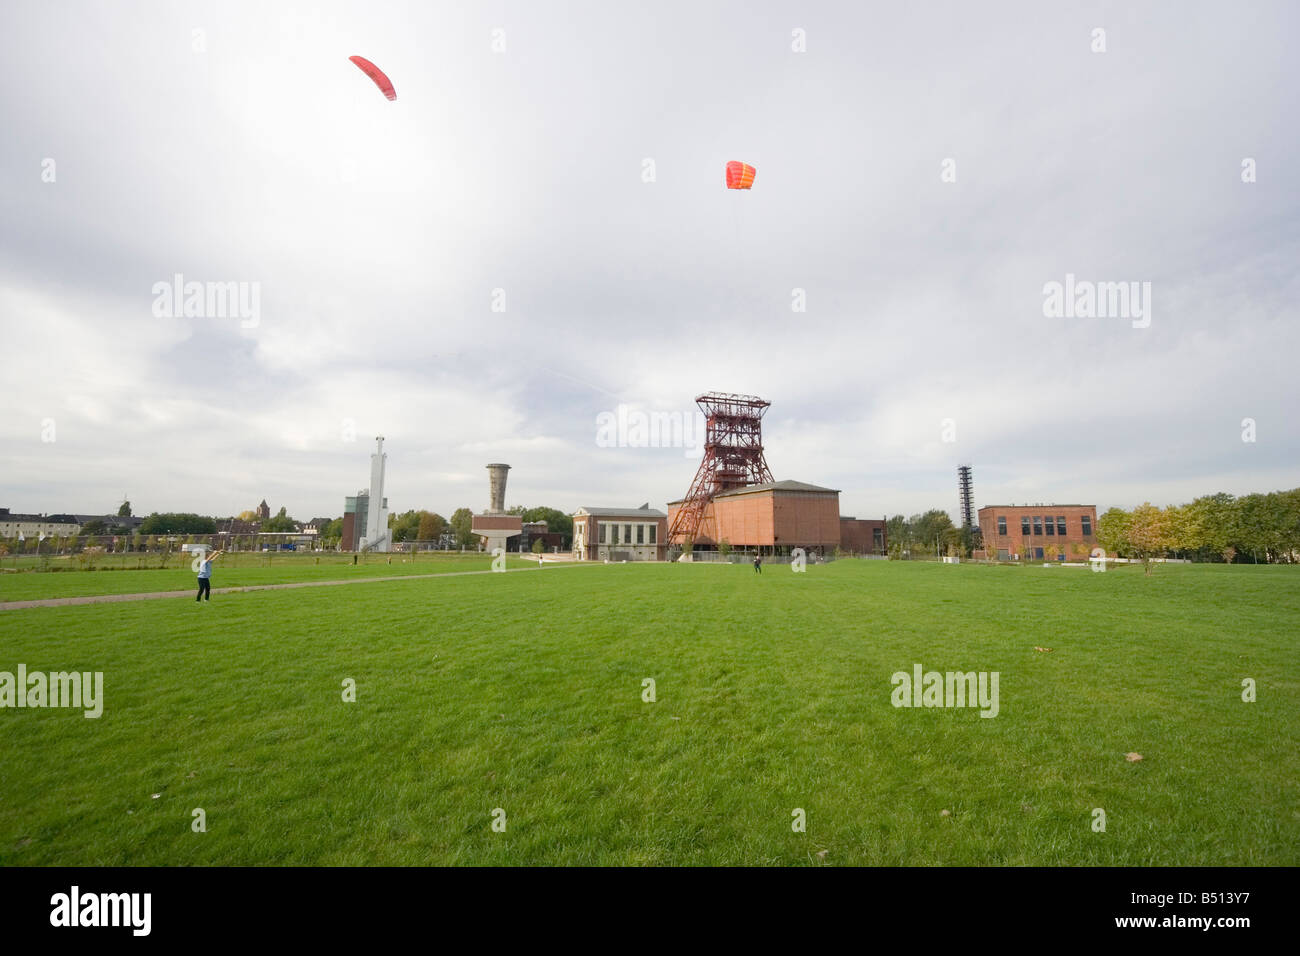 men with power kites - action in an old industrial area with a shaft tower - Stock Image